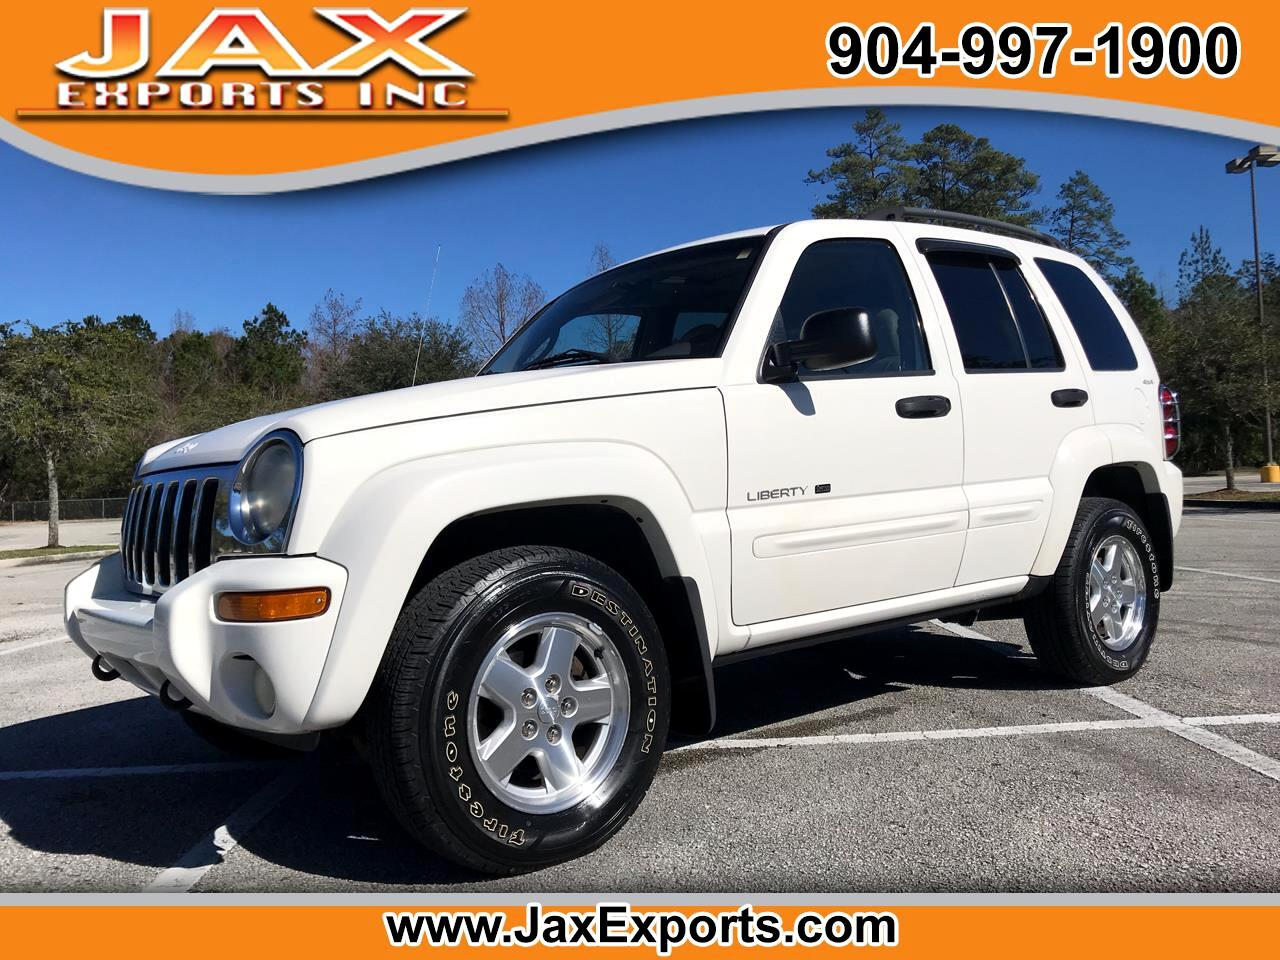 2002 Jeep Liberty 4dr Limited 4WD